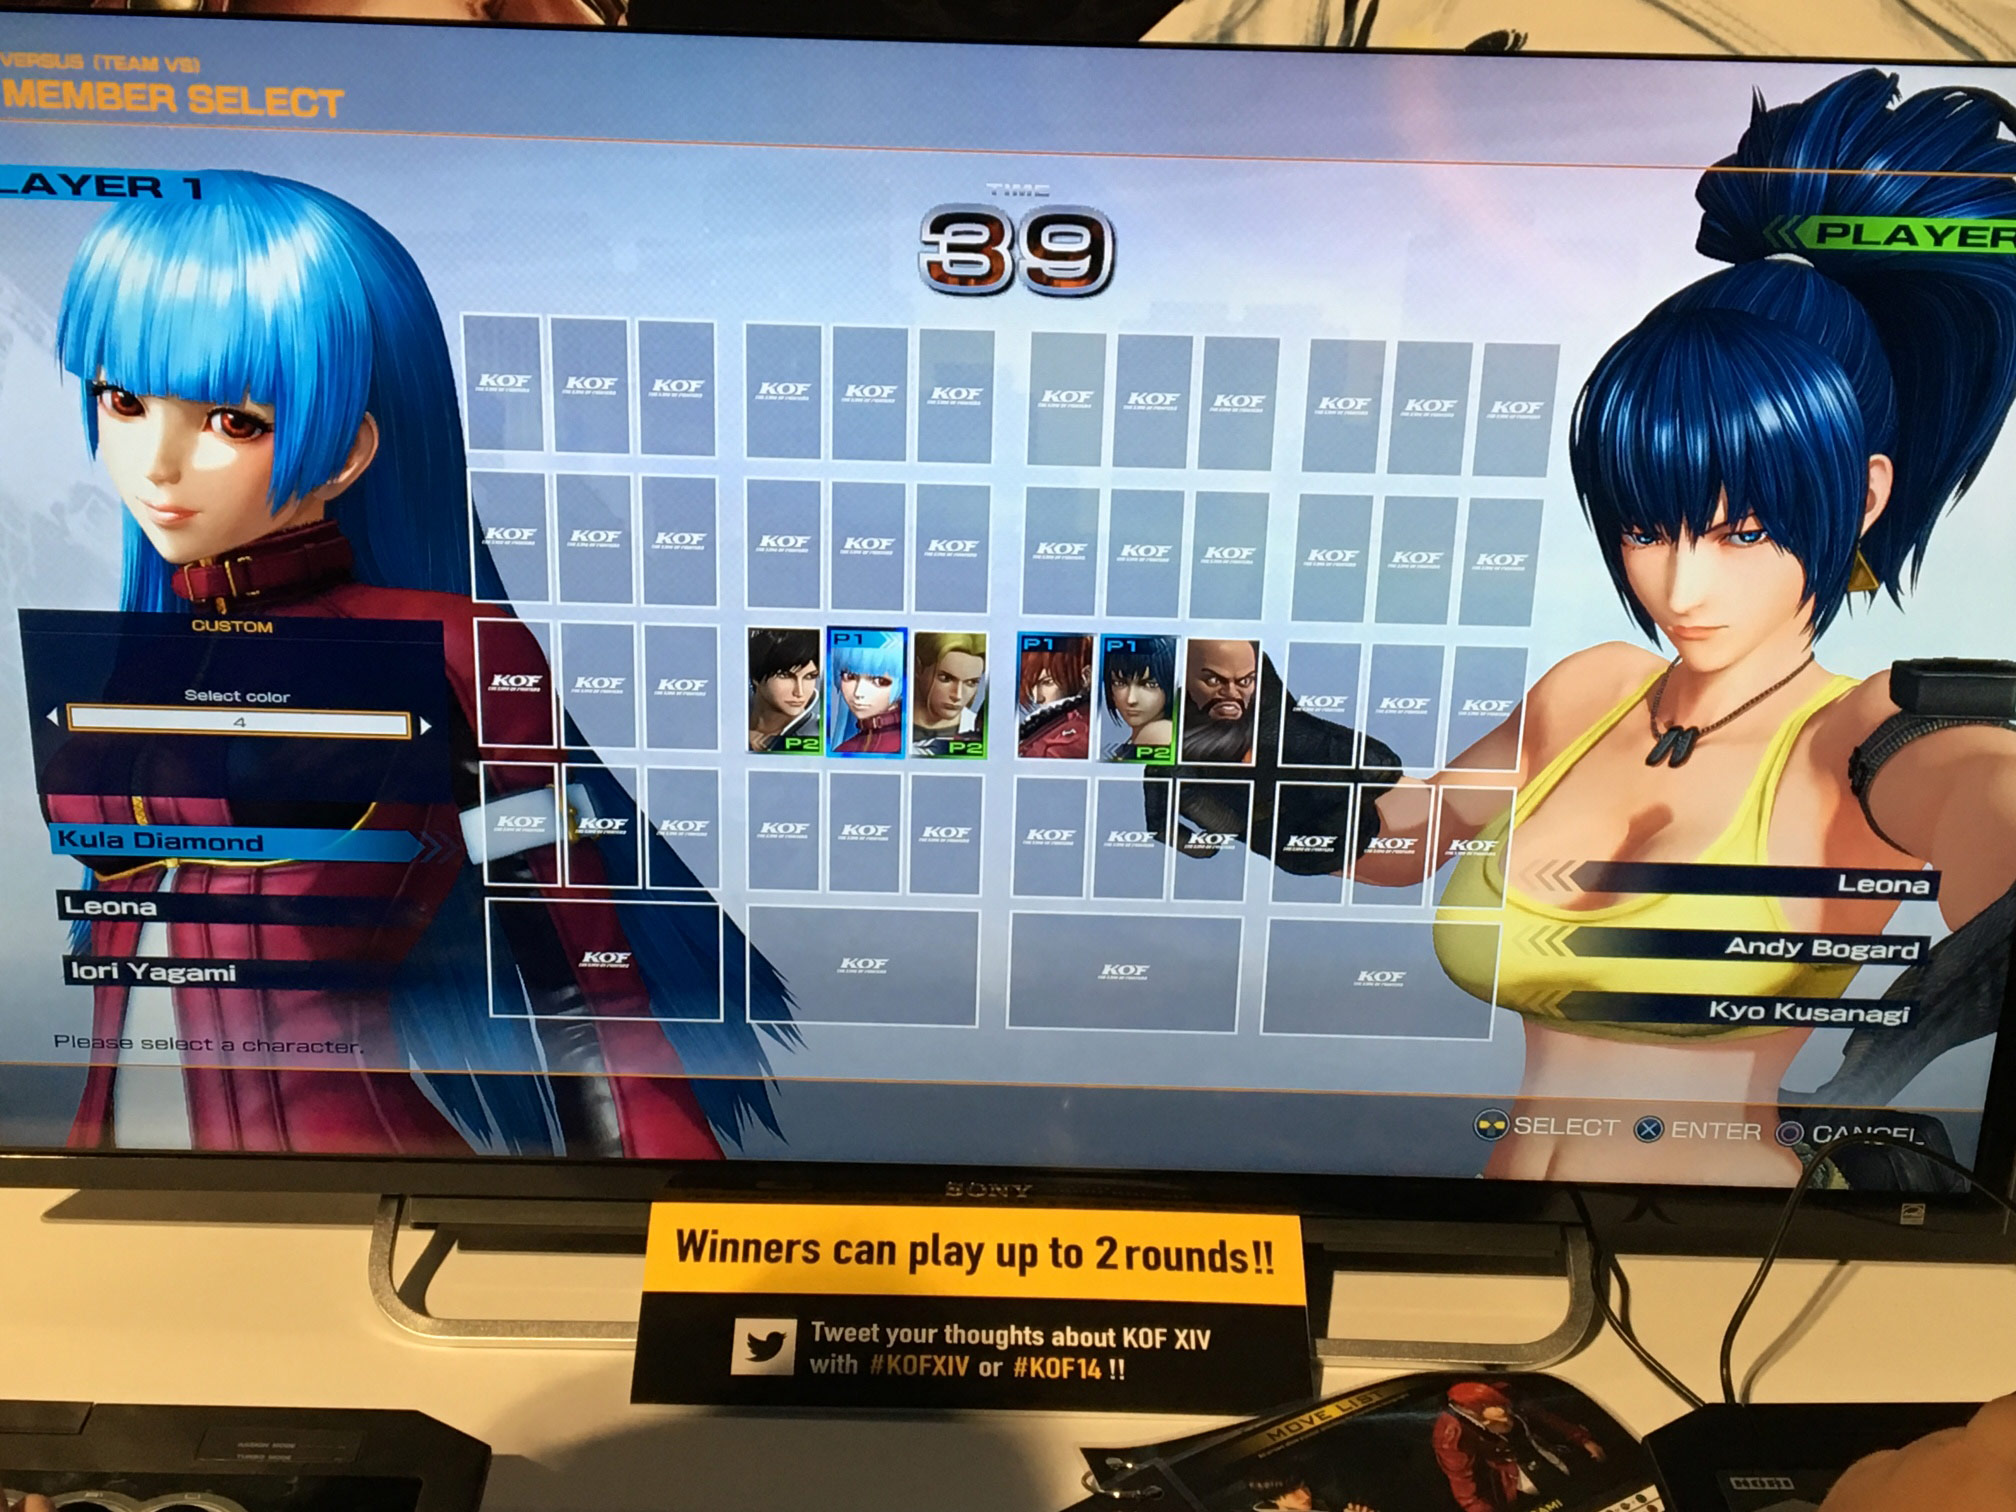 King of Fighters 14 character select, other menus 1 out of 7 image gallery